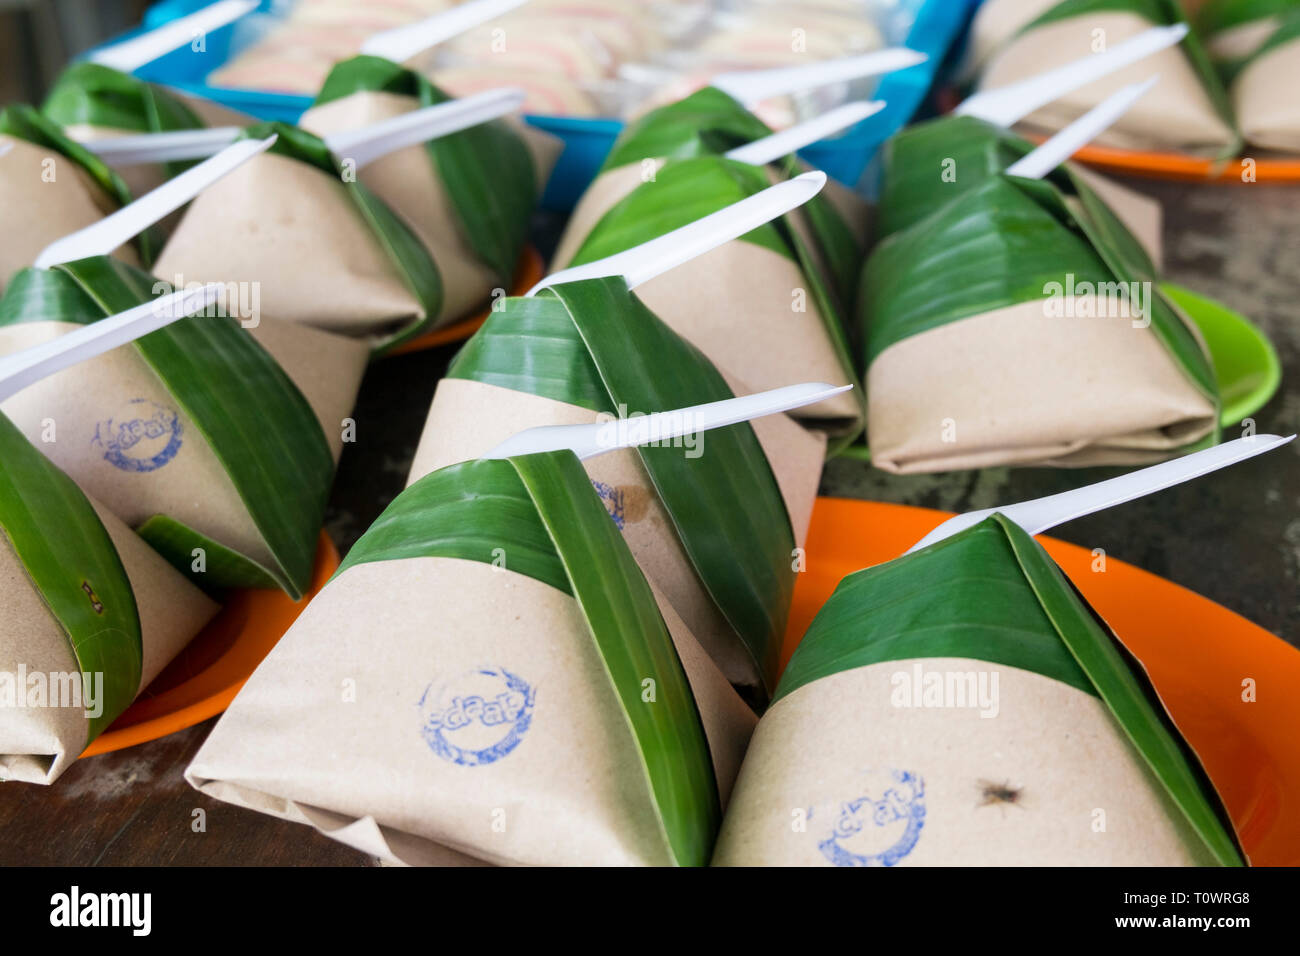 The rice breakfast dish, nasi lemak, all wrapped up and for sale at a cafe in Kota Kinabalu, Sabah, Borneo, Malaysia. - Stock Image